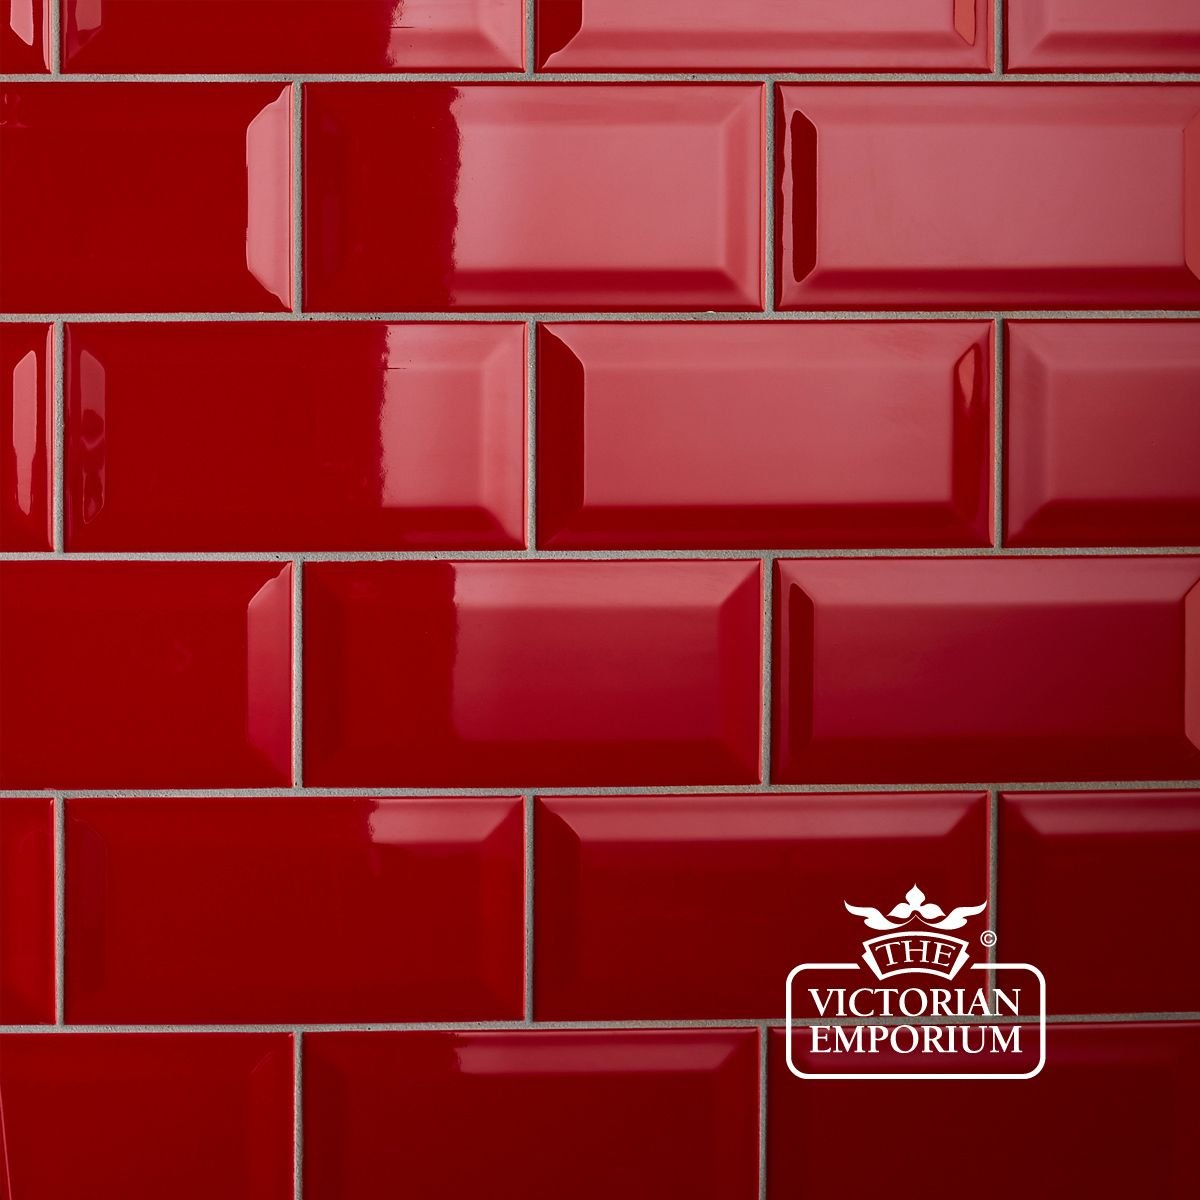 Kitchen Mural Backsplash Bevel Wall Tiles 100x200mm Red Plain Tiles